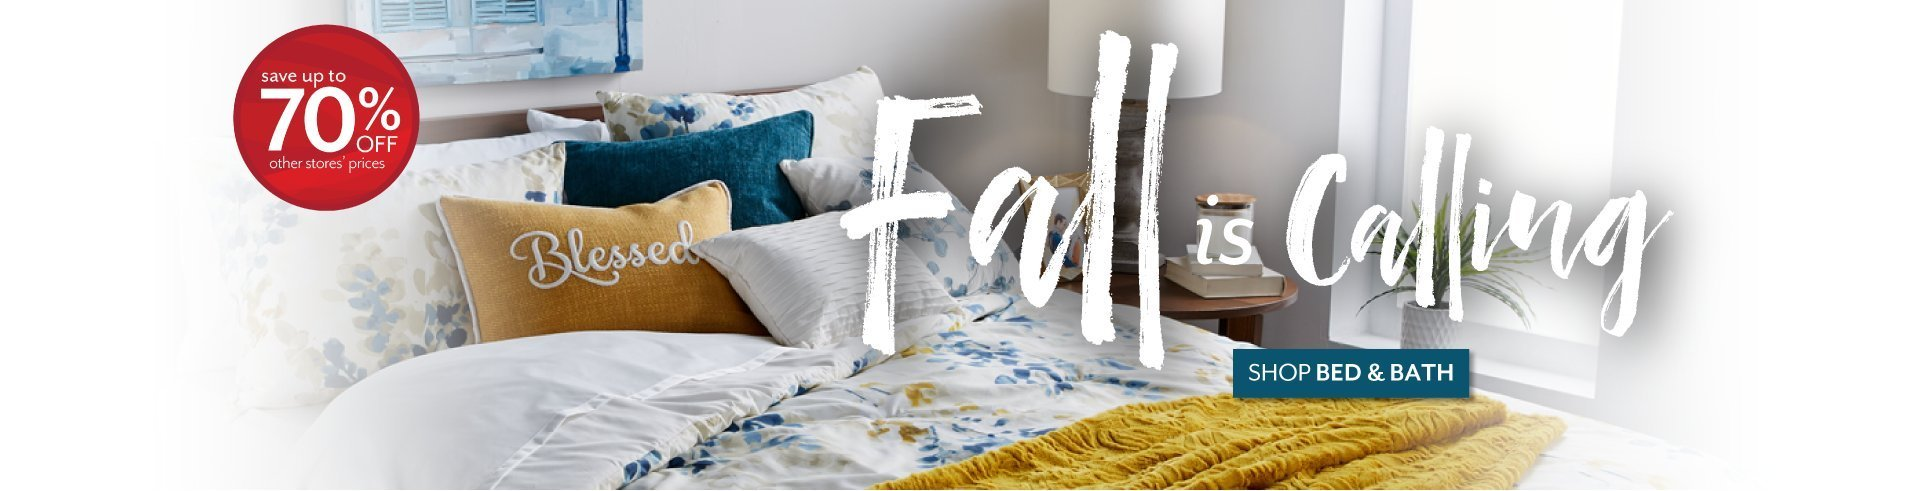 Fall is Calling - Shop Bed and Bath at Burkes Outlet